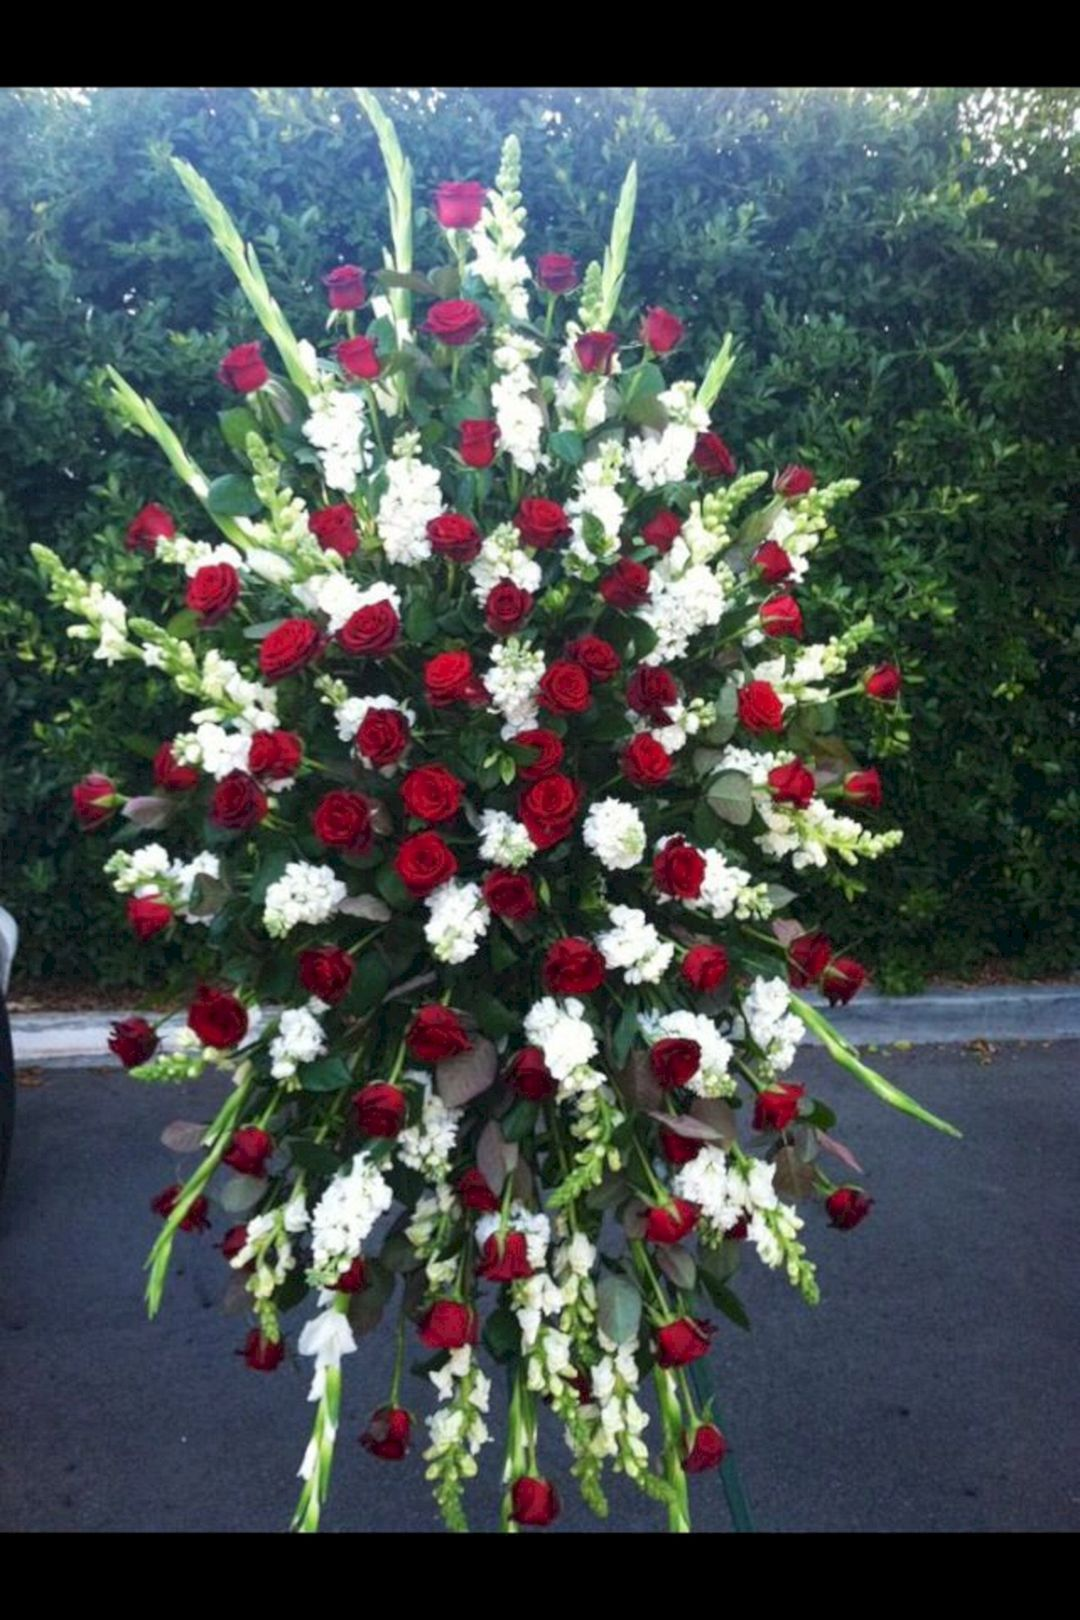 45 beautiful funeral arrangements ideas easy to make it https 45 beautiful funeral arrangements ideas easy to make it izmirmasajfo